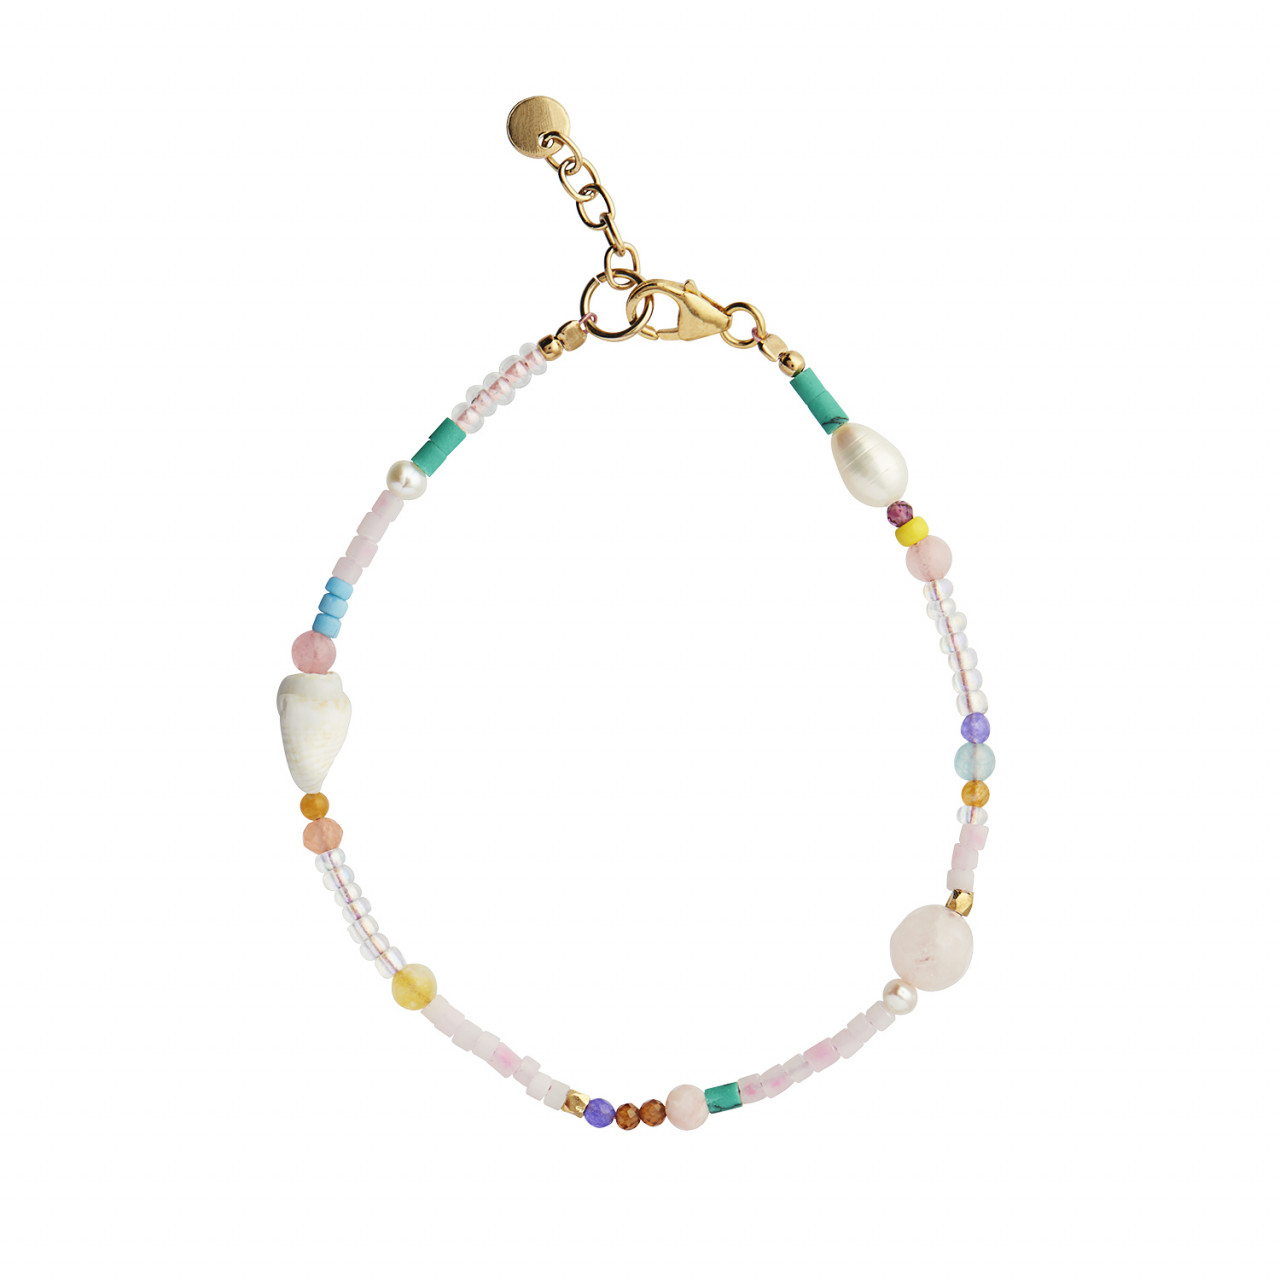 Pink Beach Bracelet - Gemstones, Pearls, Glass Beads and Shell - Gold